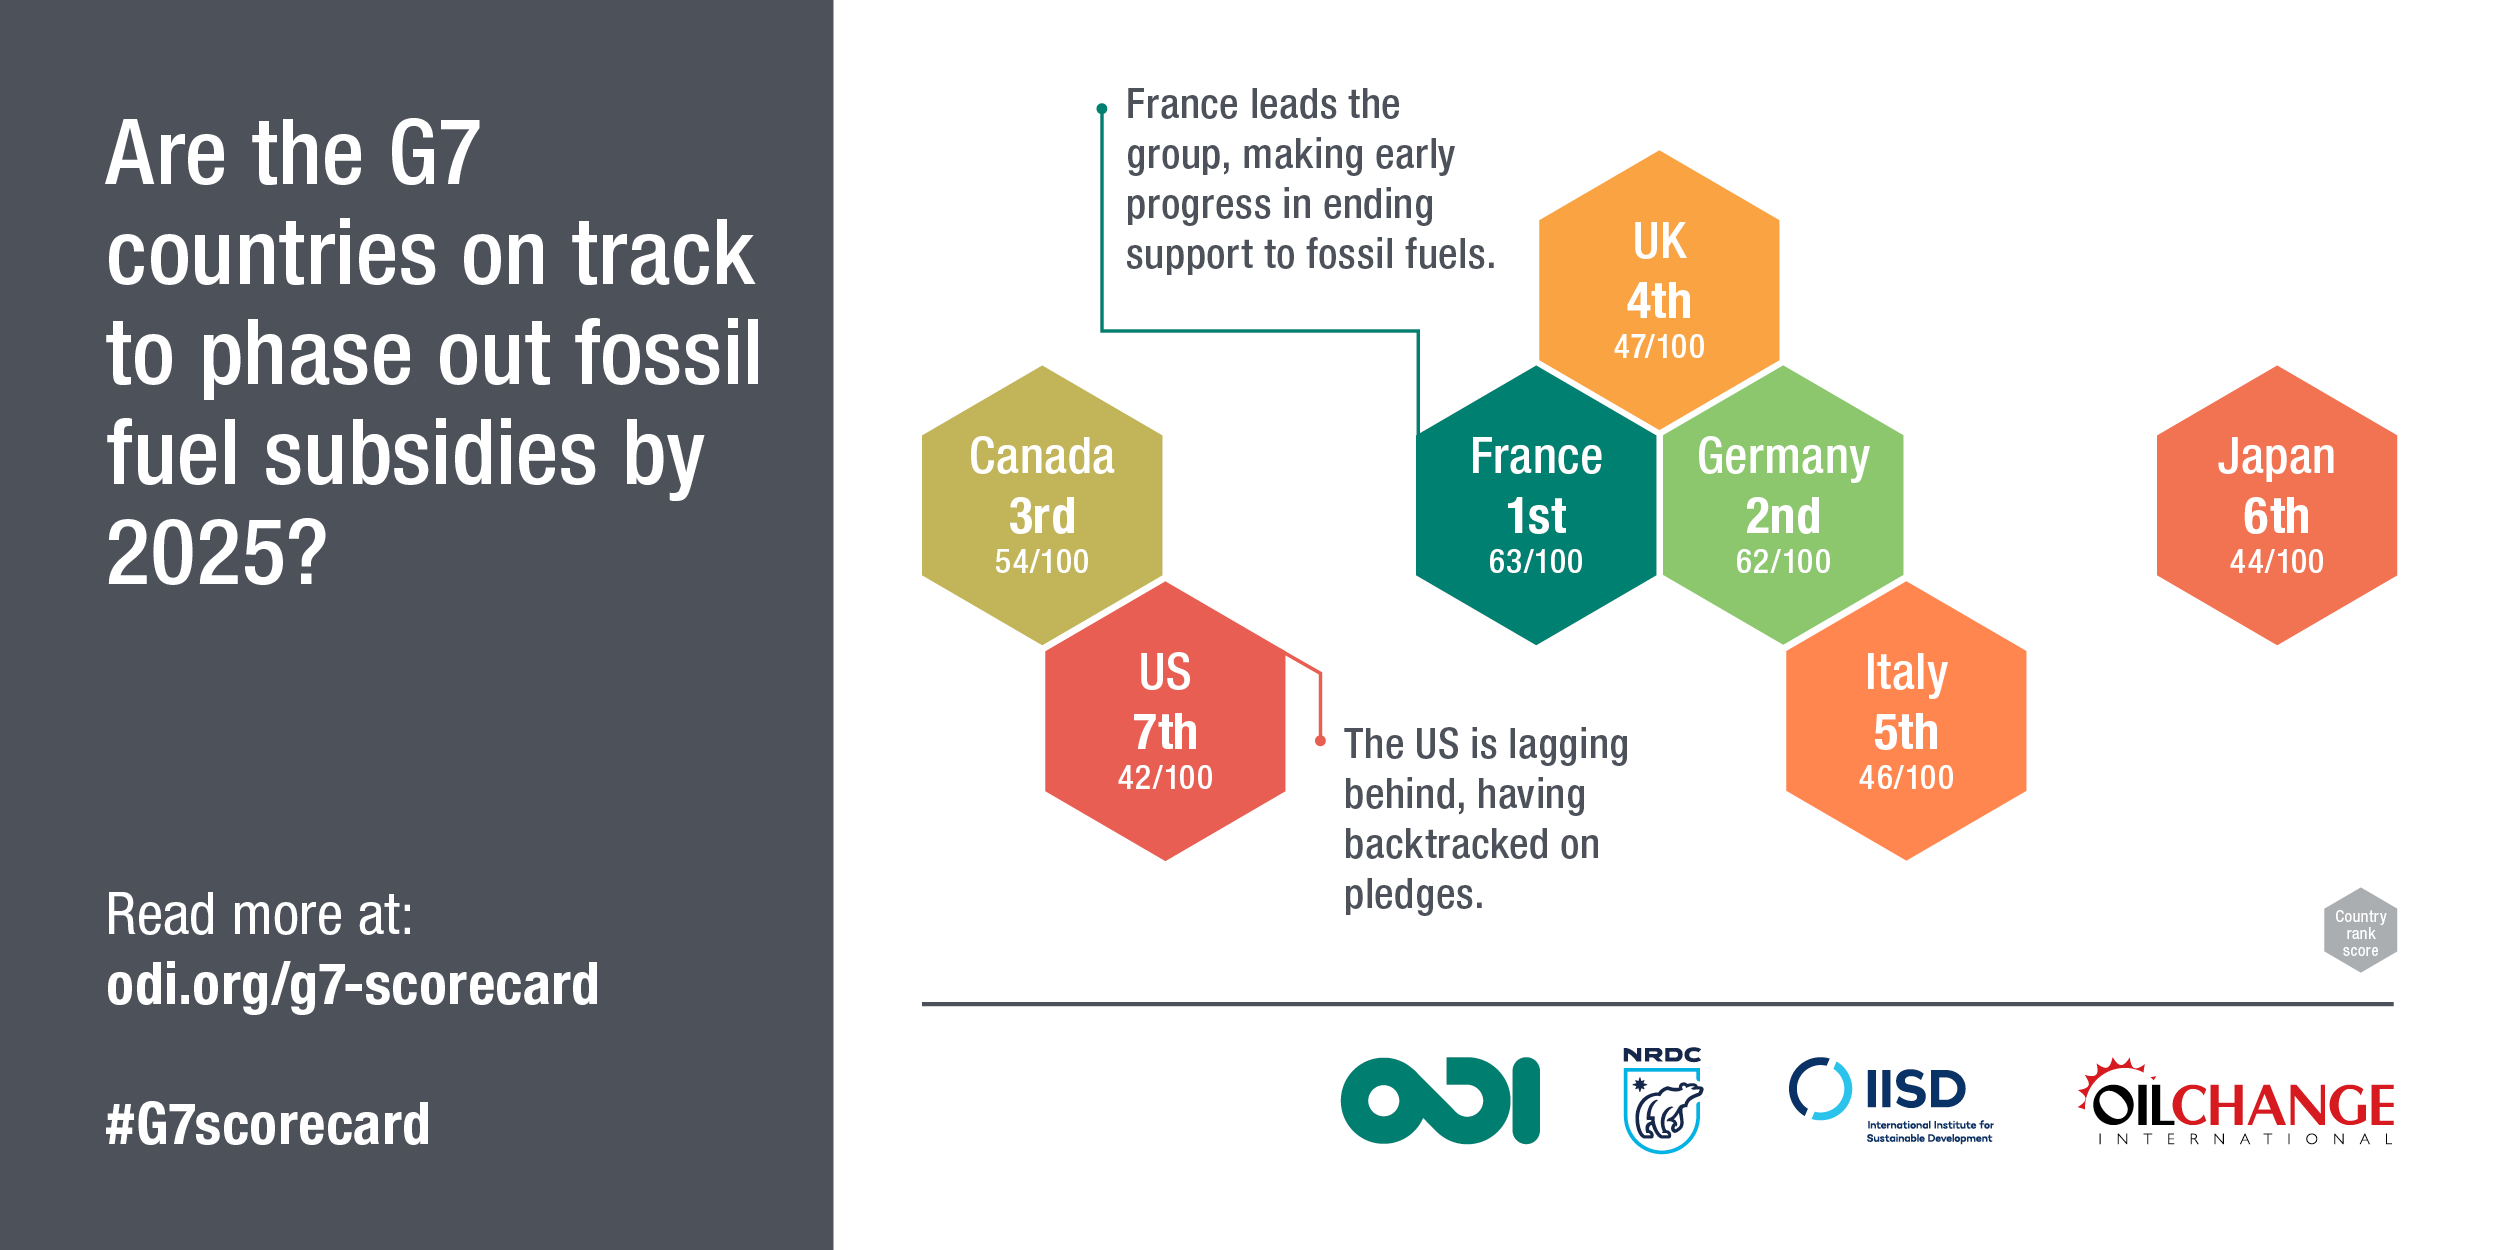 Are the G7 countries on track to phase out fossil fuel subsidies by 2025? Image: ODI